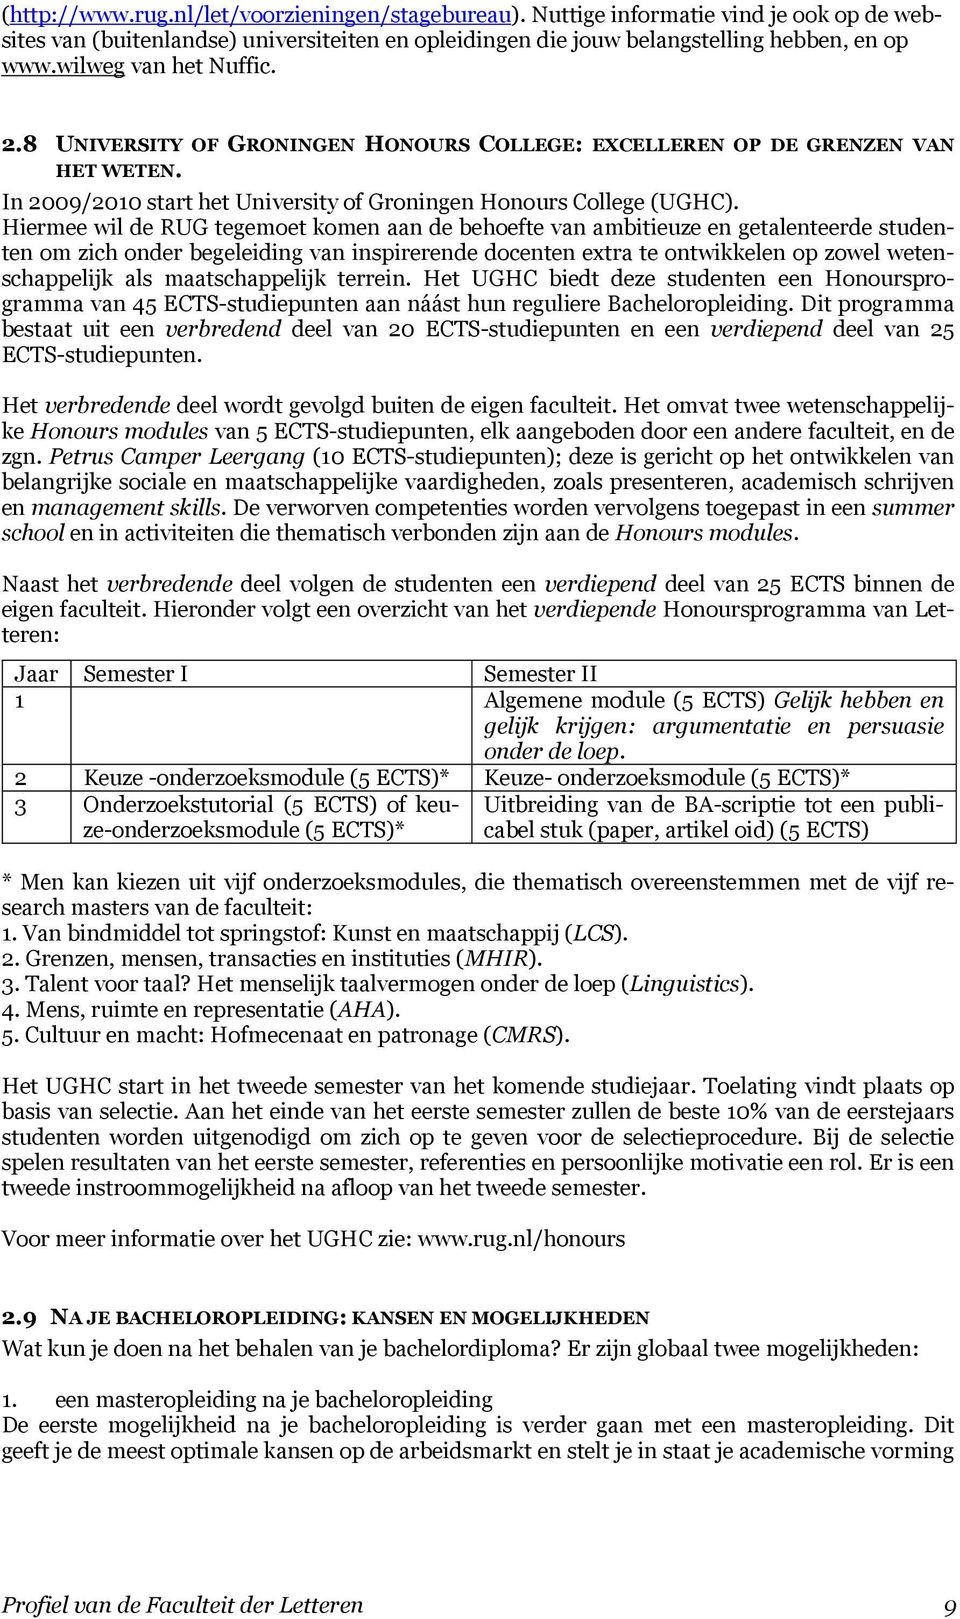 In 2009/2010 start het University of Groningen Honours College (UGHC).